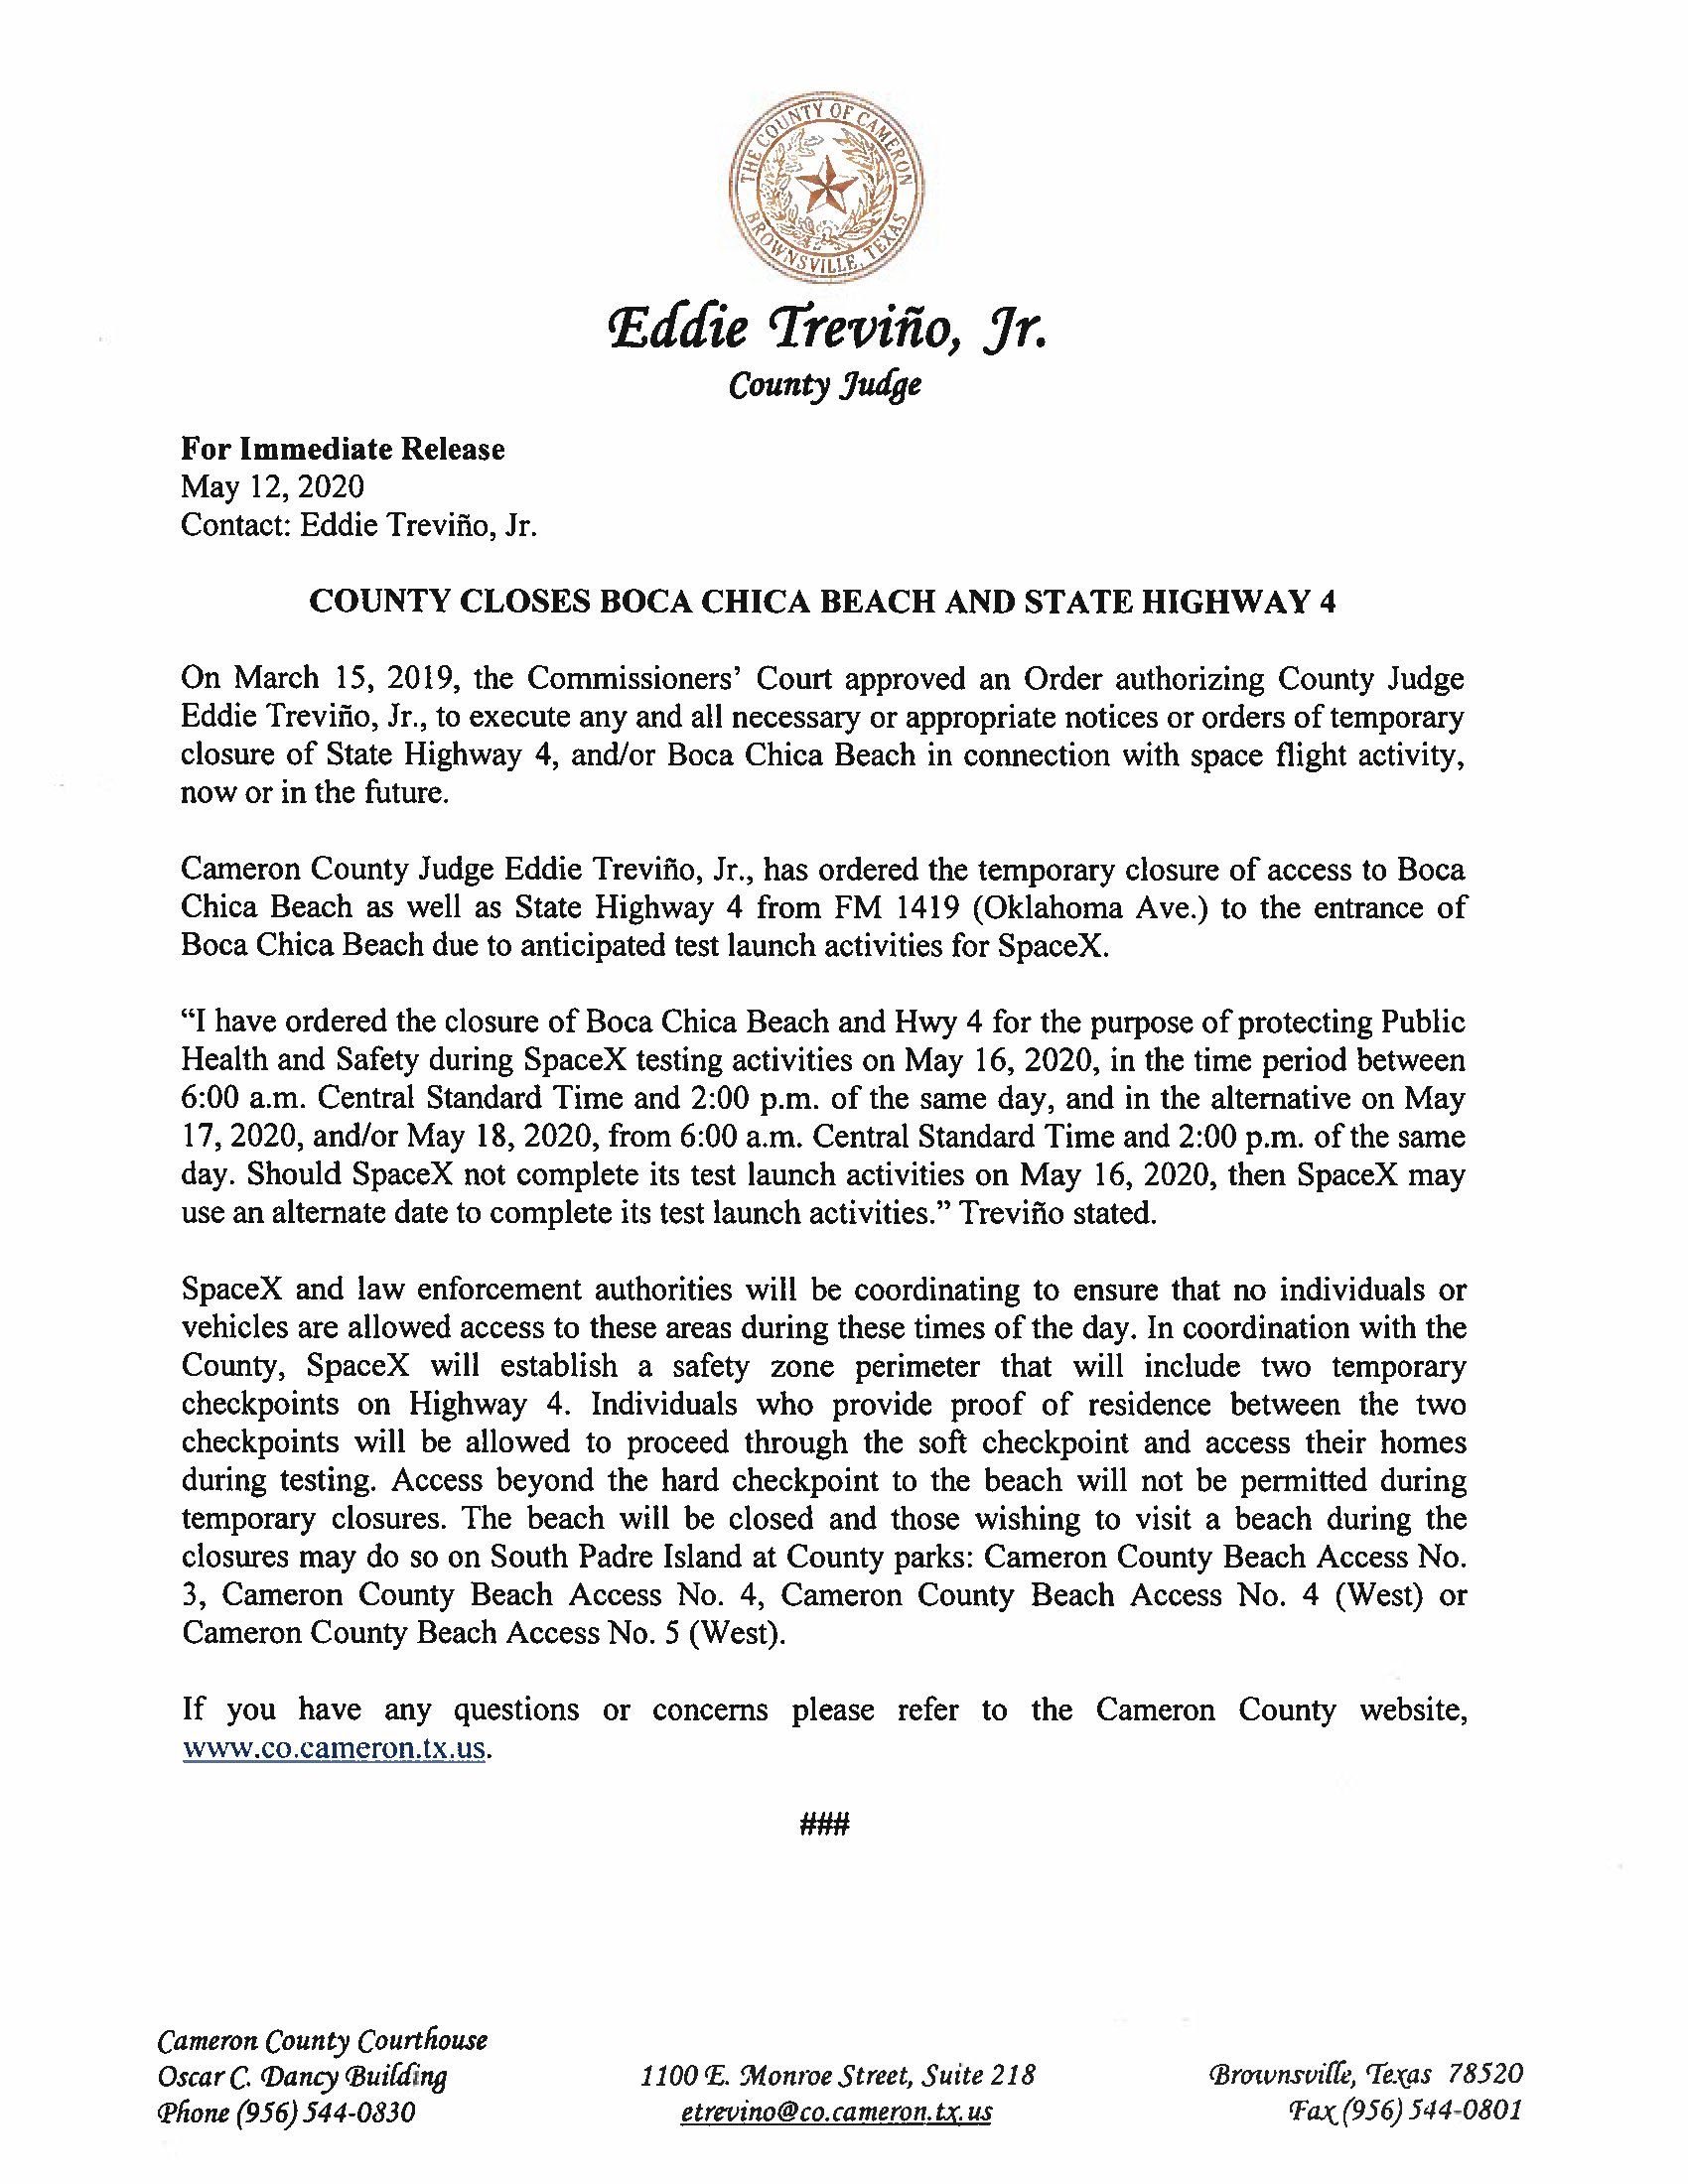 Press Release In English And Spanish.05.16.20 Page 1